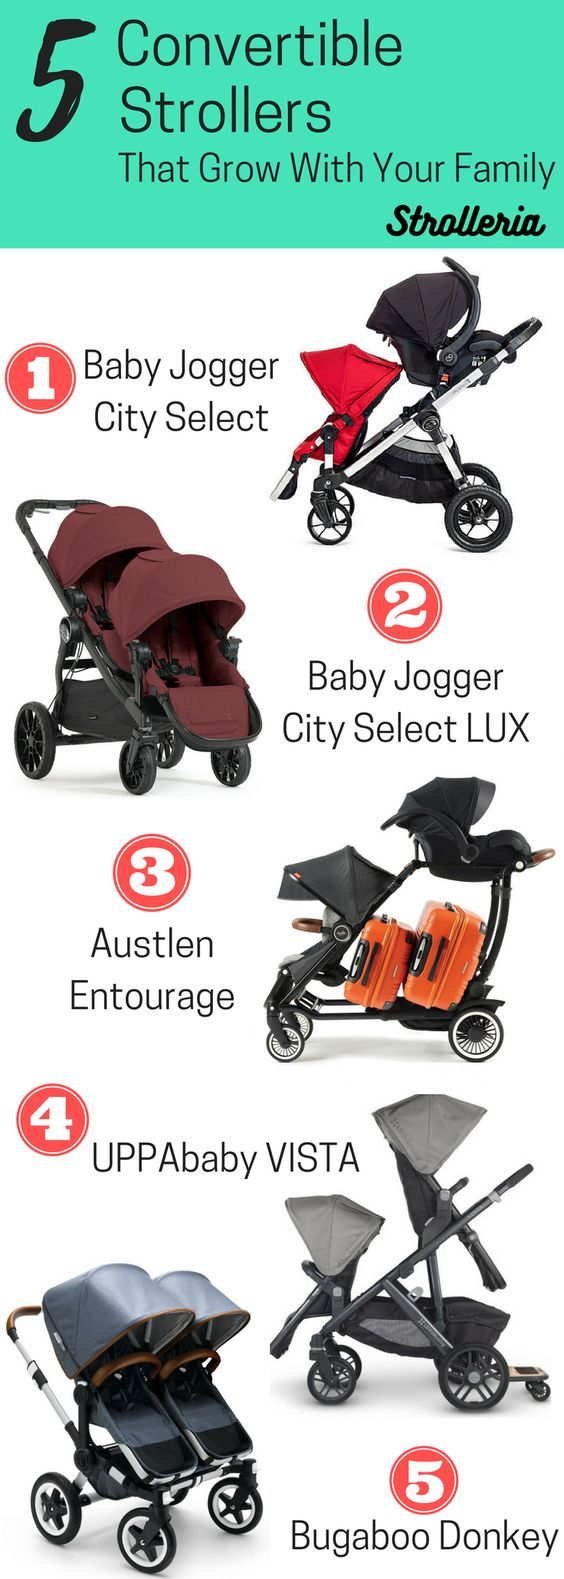 Pin by Baby Strollers on How to Choose a Stroller and Car